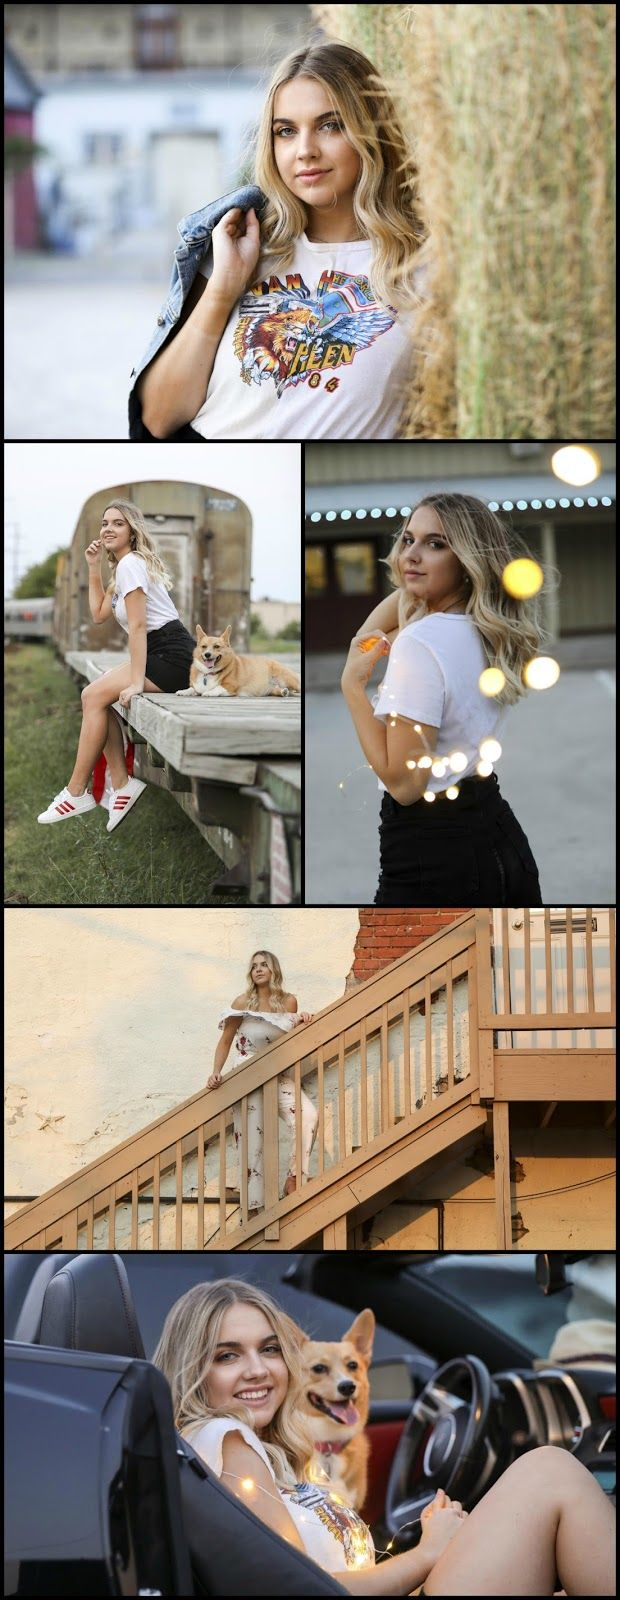 click for Senior Picture ideas girl, posing, dog, urban, park, country, city, clothes, creative, different, what to wear, beautiful